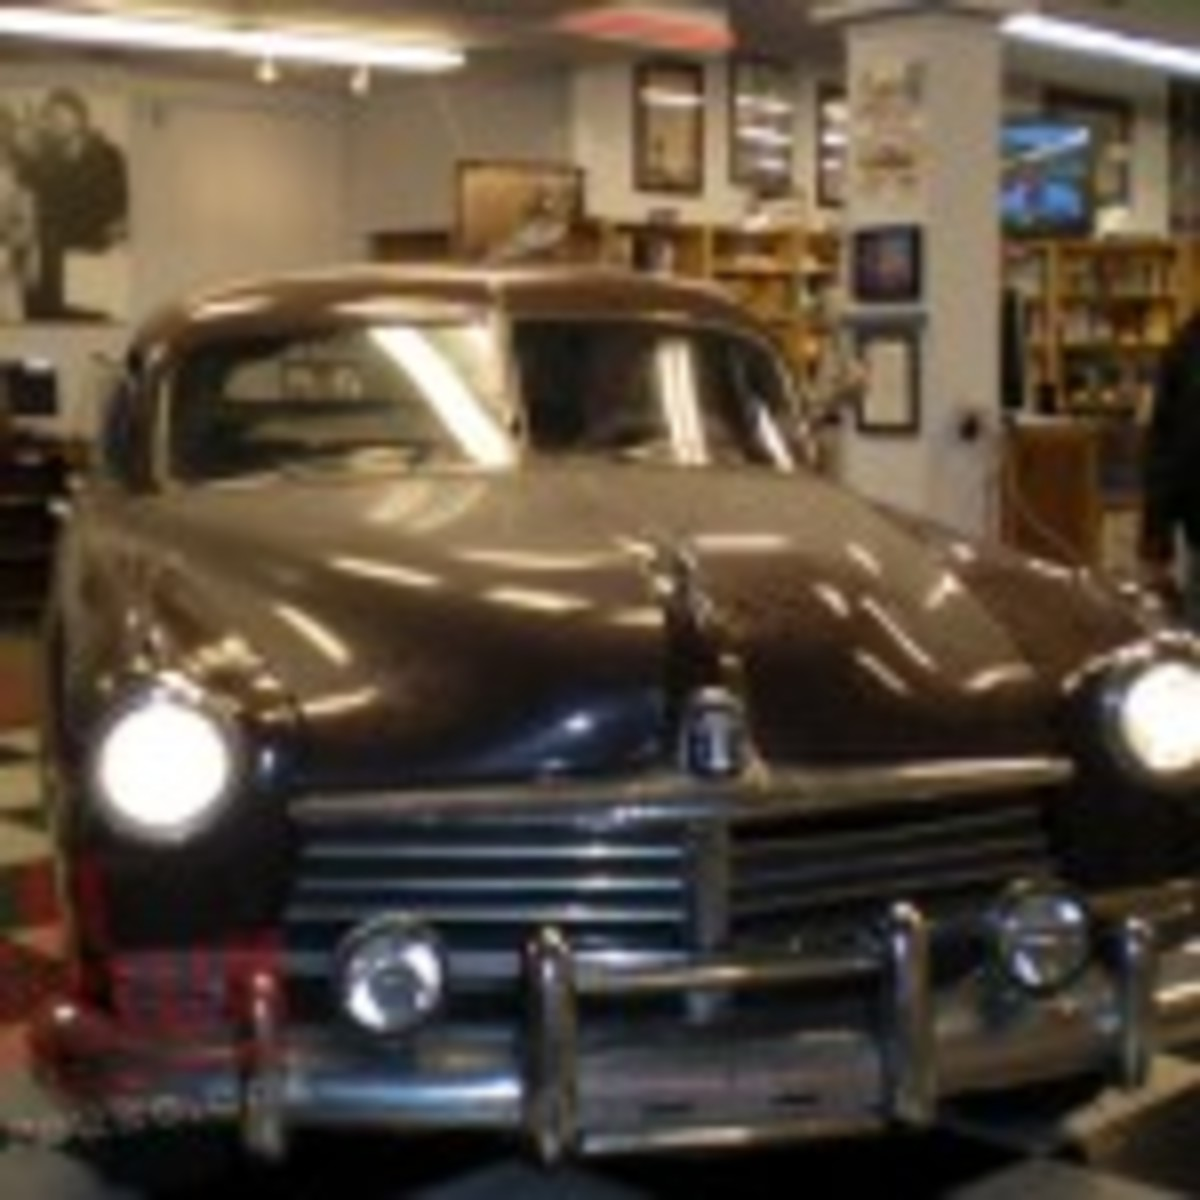 The Hudson car used in the movie On The Road.